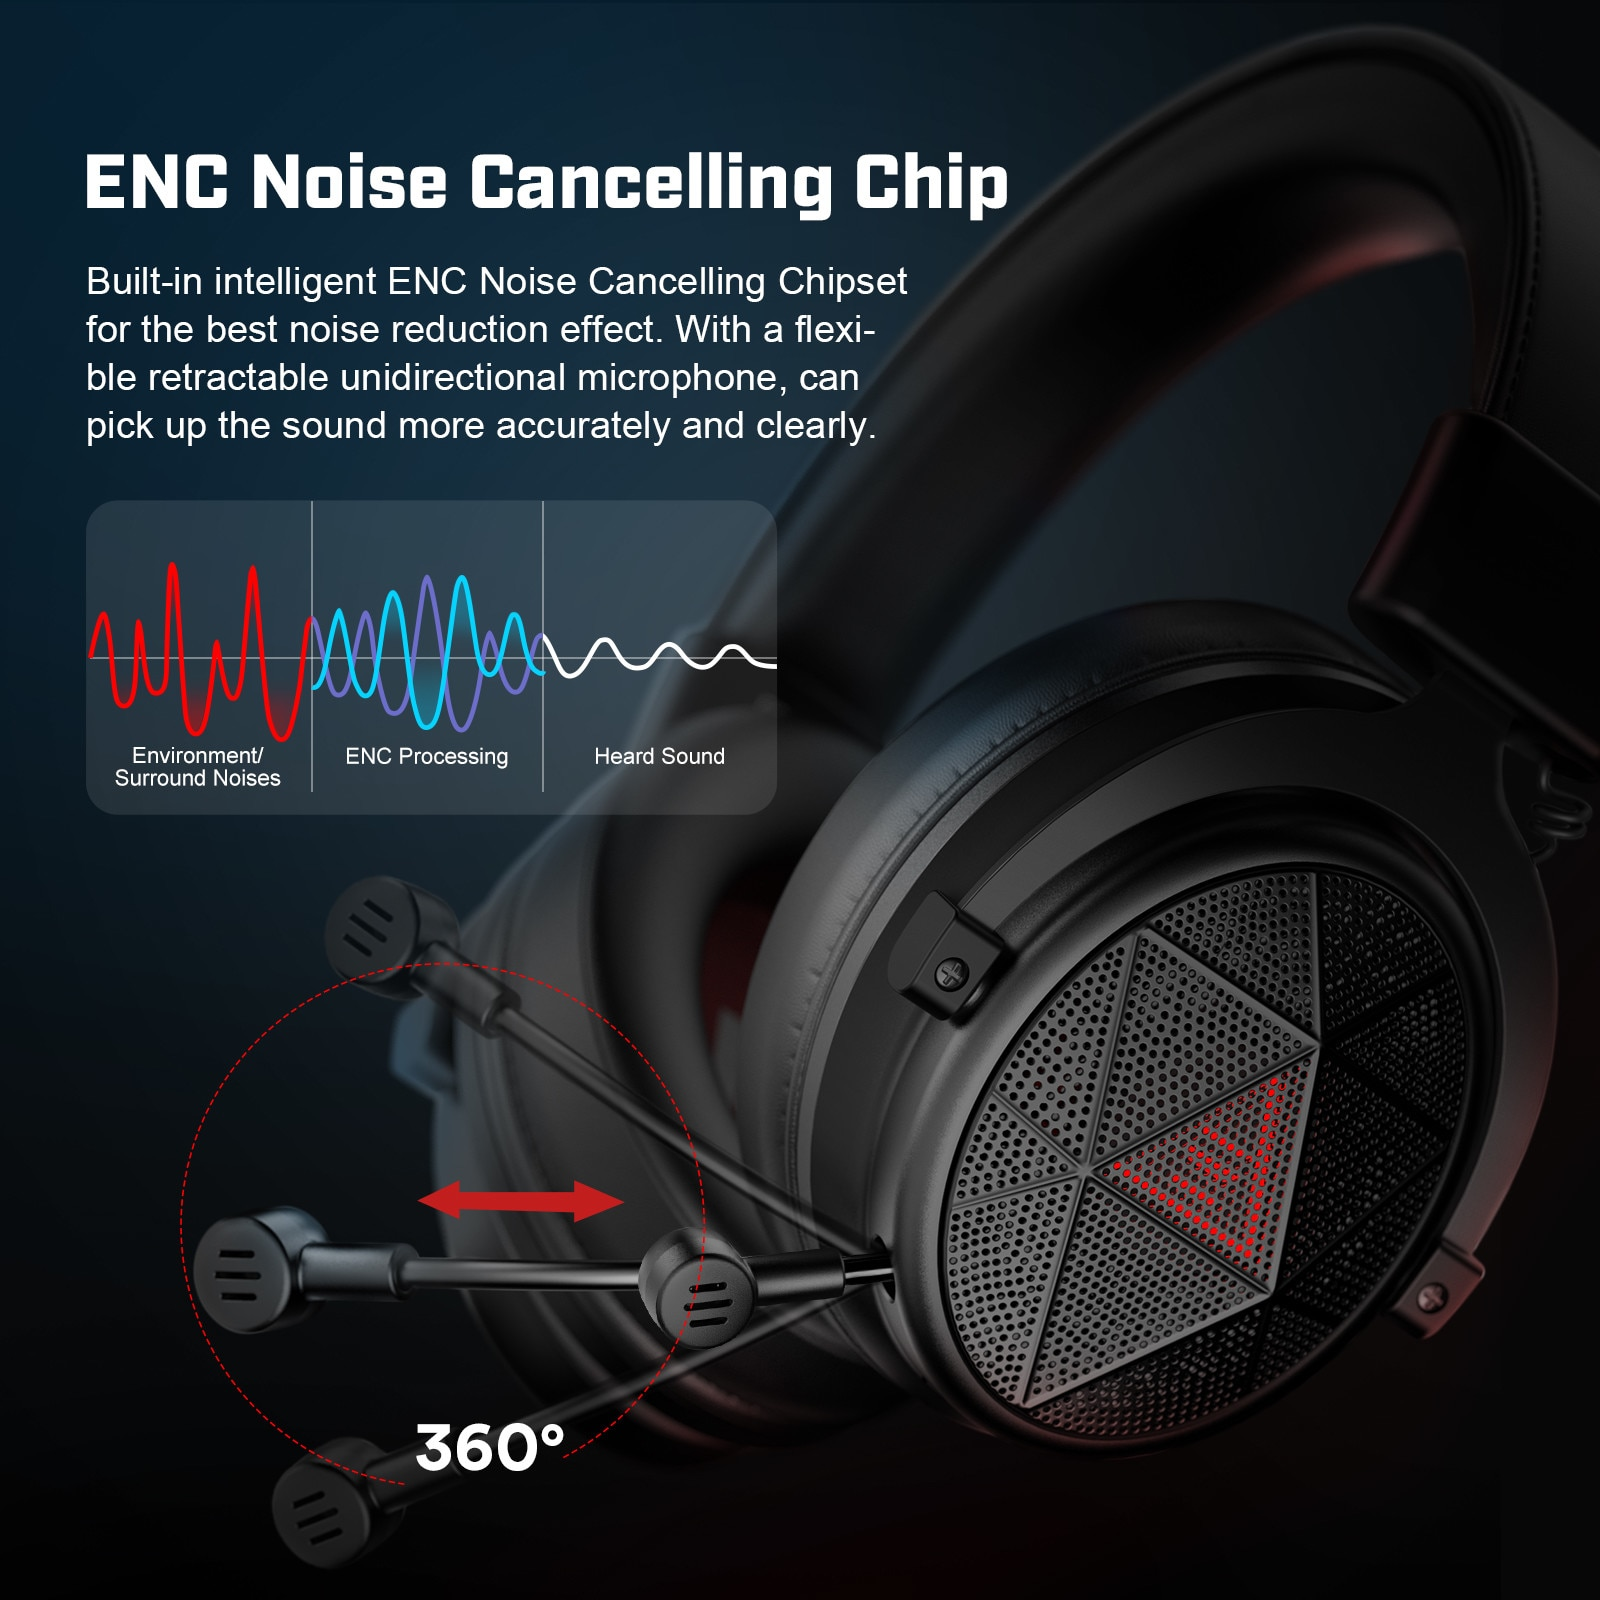 EKSA 5.8GHz Wireless Headphones E910 Gaming Headset with Microphone/ENC/7.1 Surround/Low Latency Headset Gamer for PS4/PC/TV enlarge